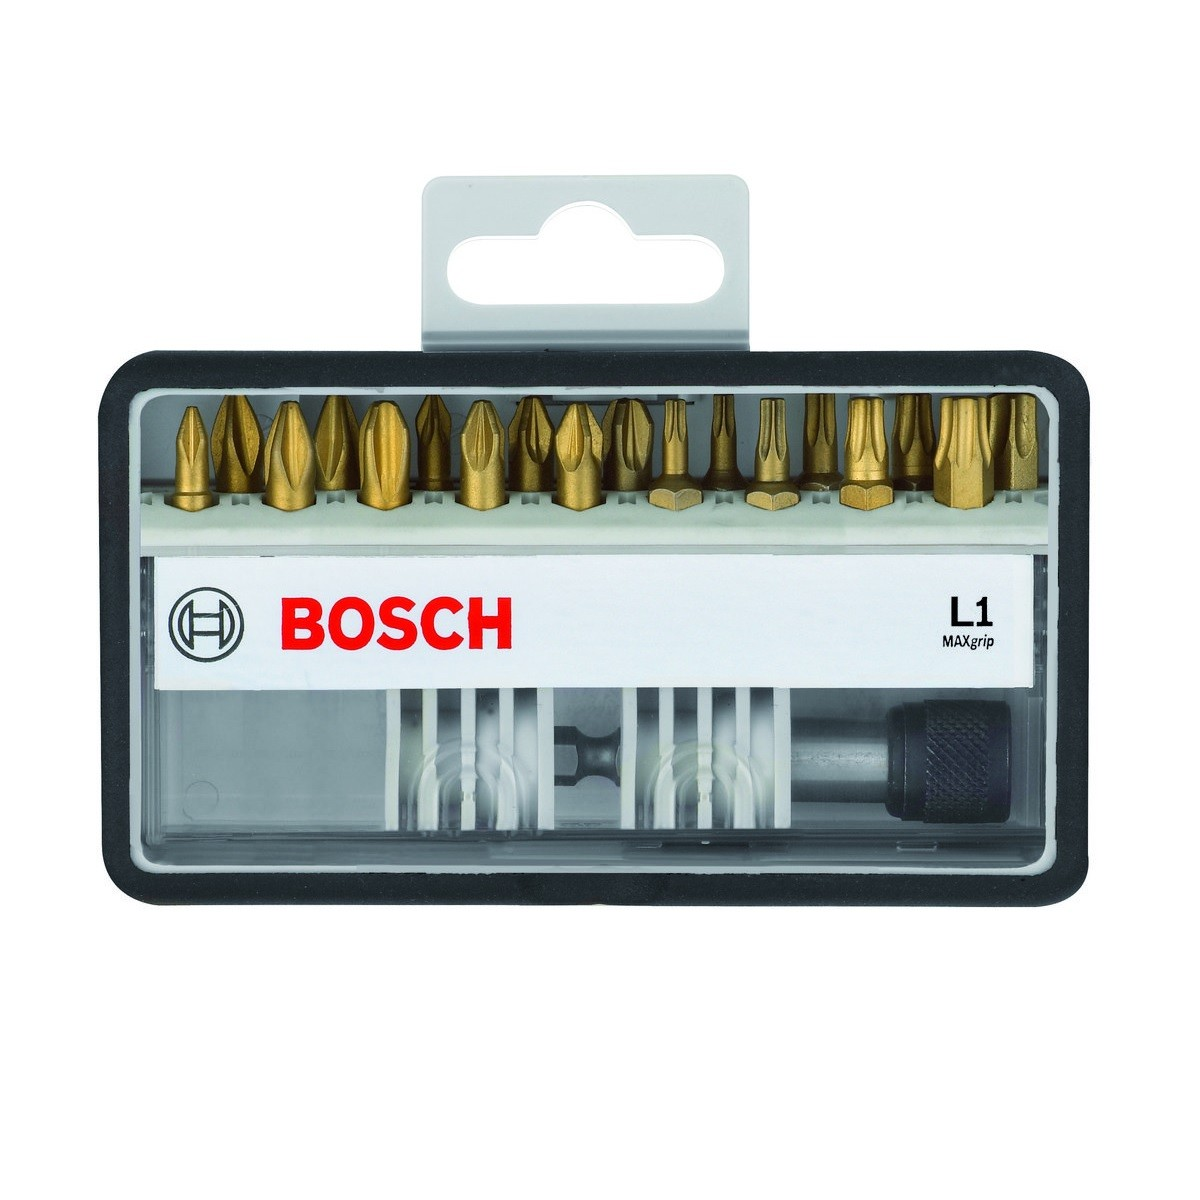 Bosch 18+1 Piece L1 MAXgrip TiN Pozi, Phillips & Torx 25mm Screwdriver Bit Set 2607002581